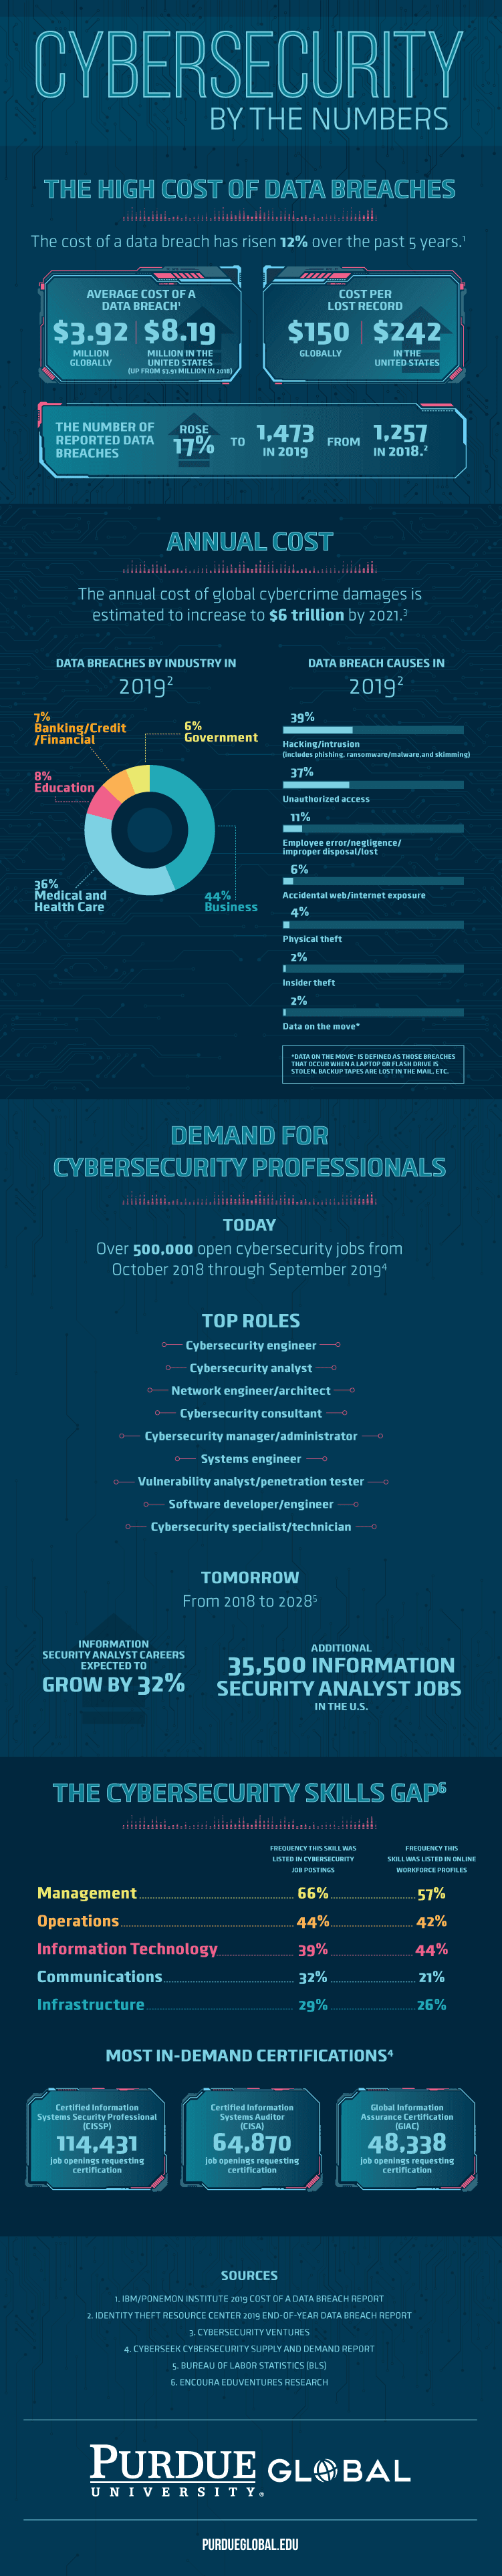 Cybersecurity By The Numbers #infographic #Cyber security #infographics #Information Technology